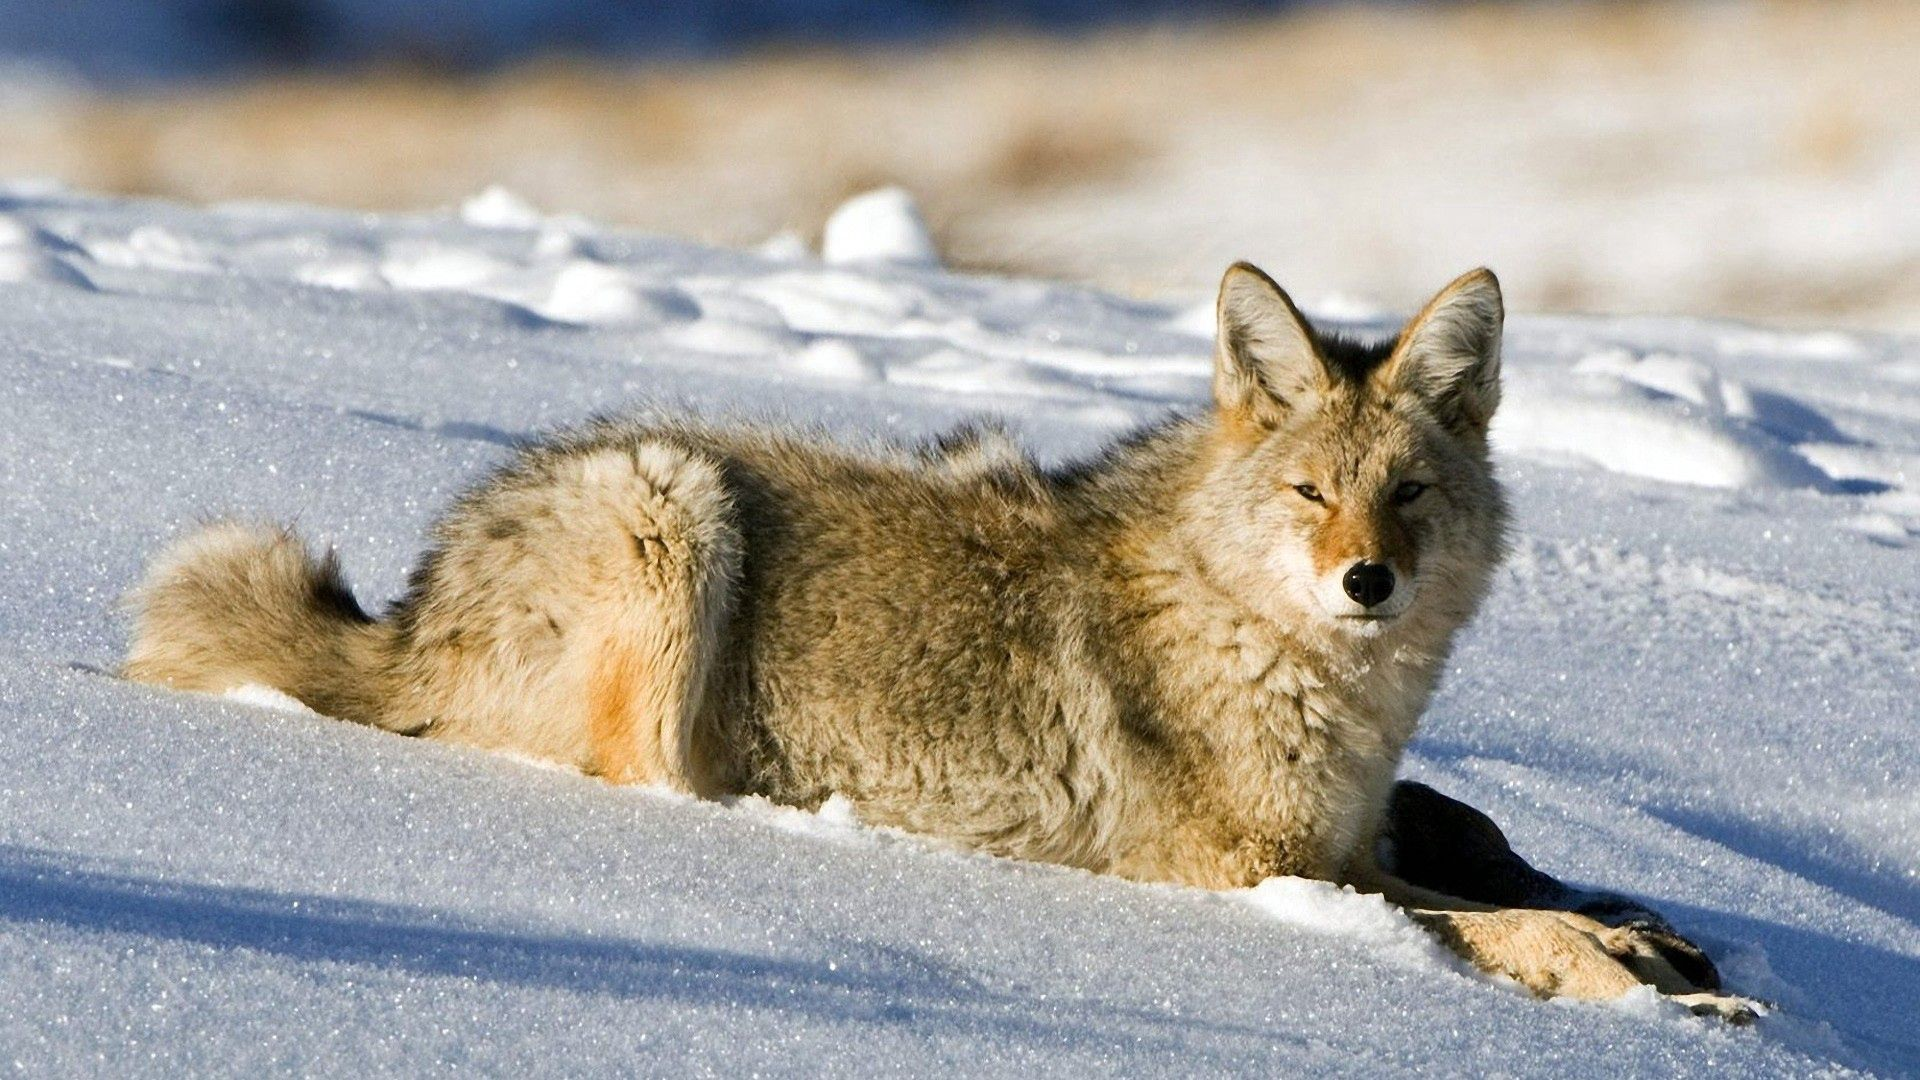 117359 download wallpaper Animals, Fox, Snow, Light, Hunting, Hunt screensavers and pictures for free